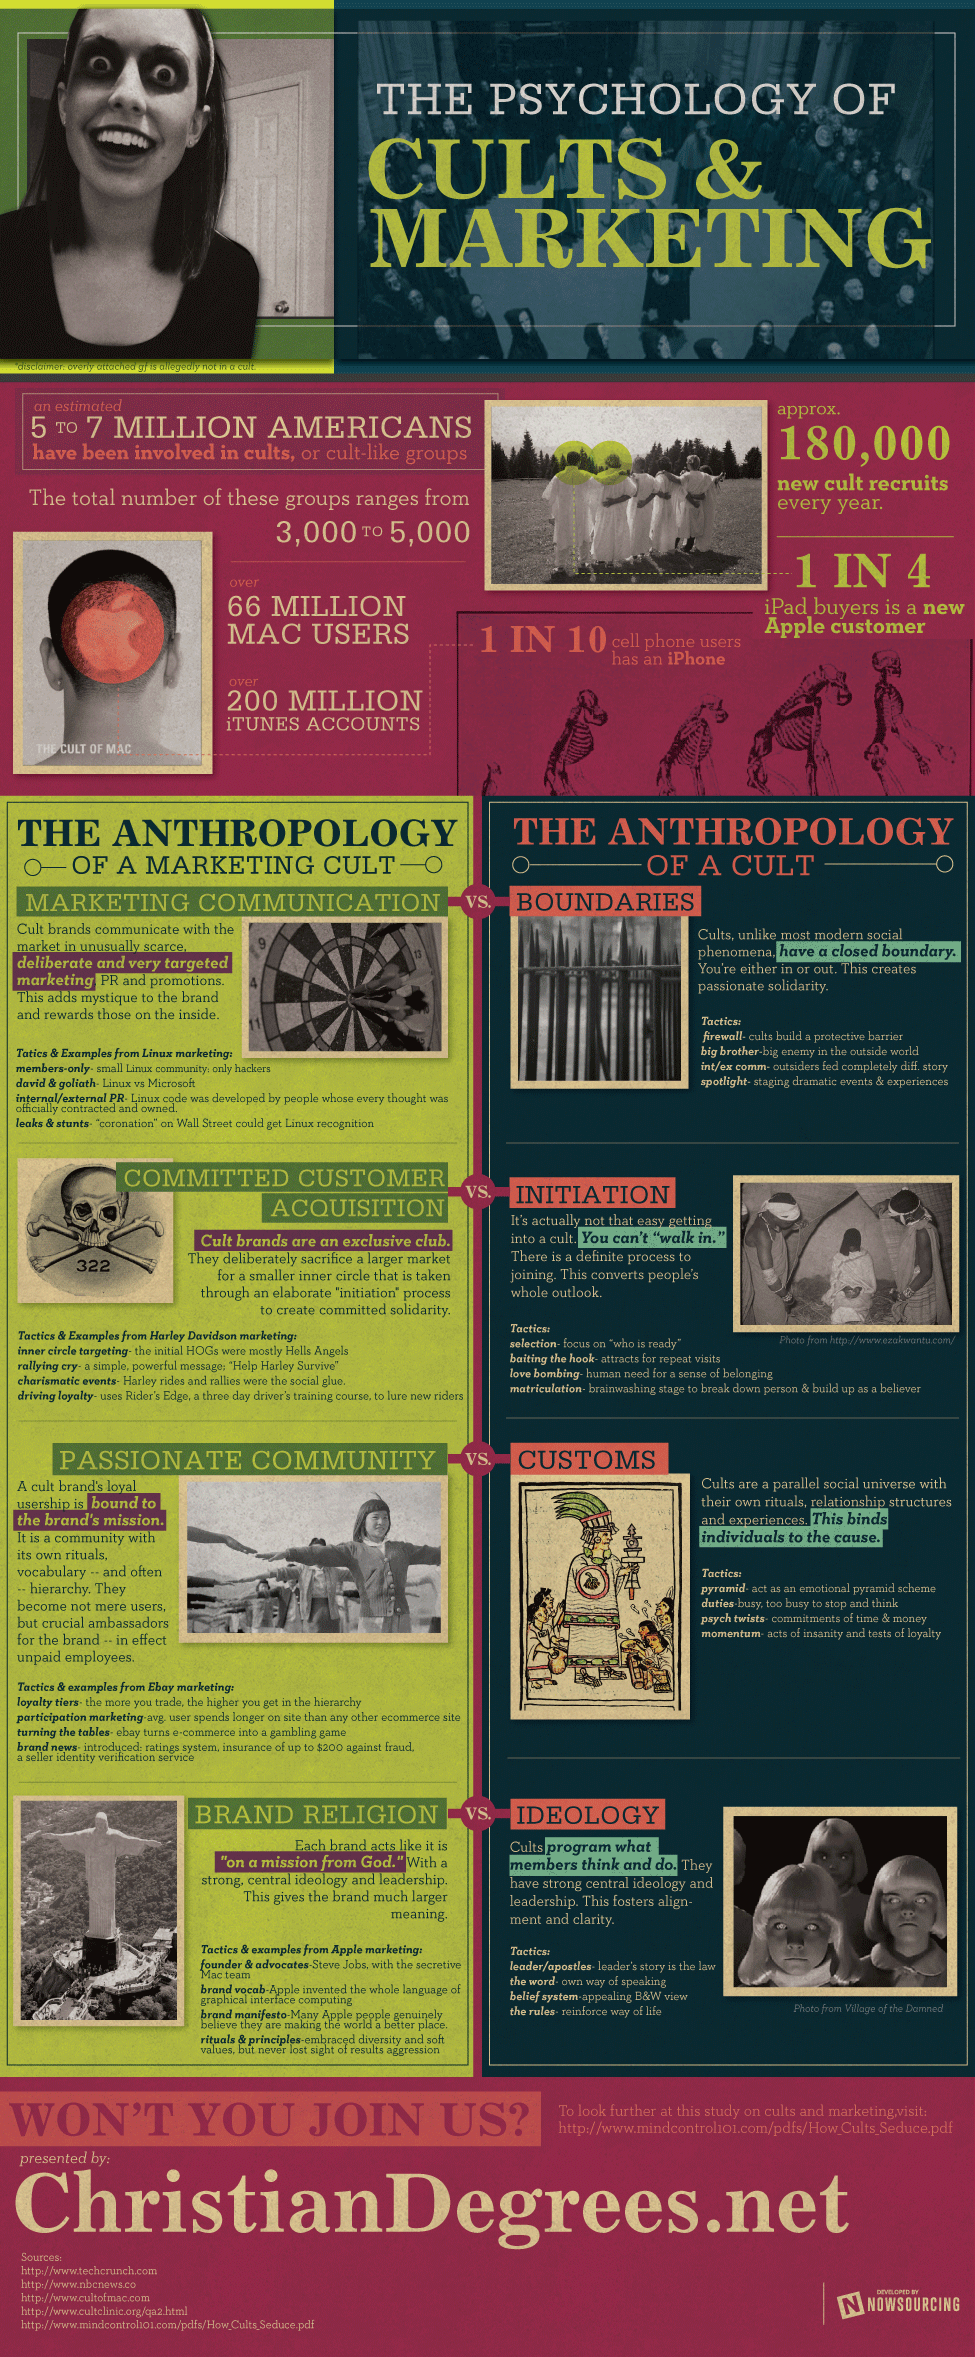 The Psychology of Cults and Marketing [Infographic] image psychology of cults marketing 1